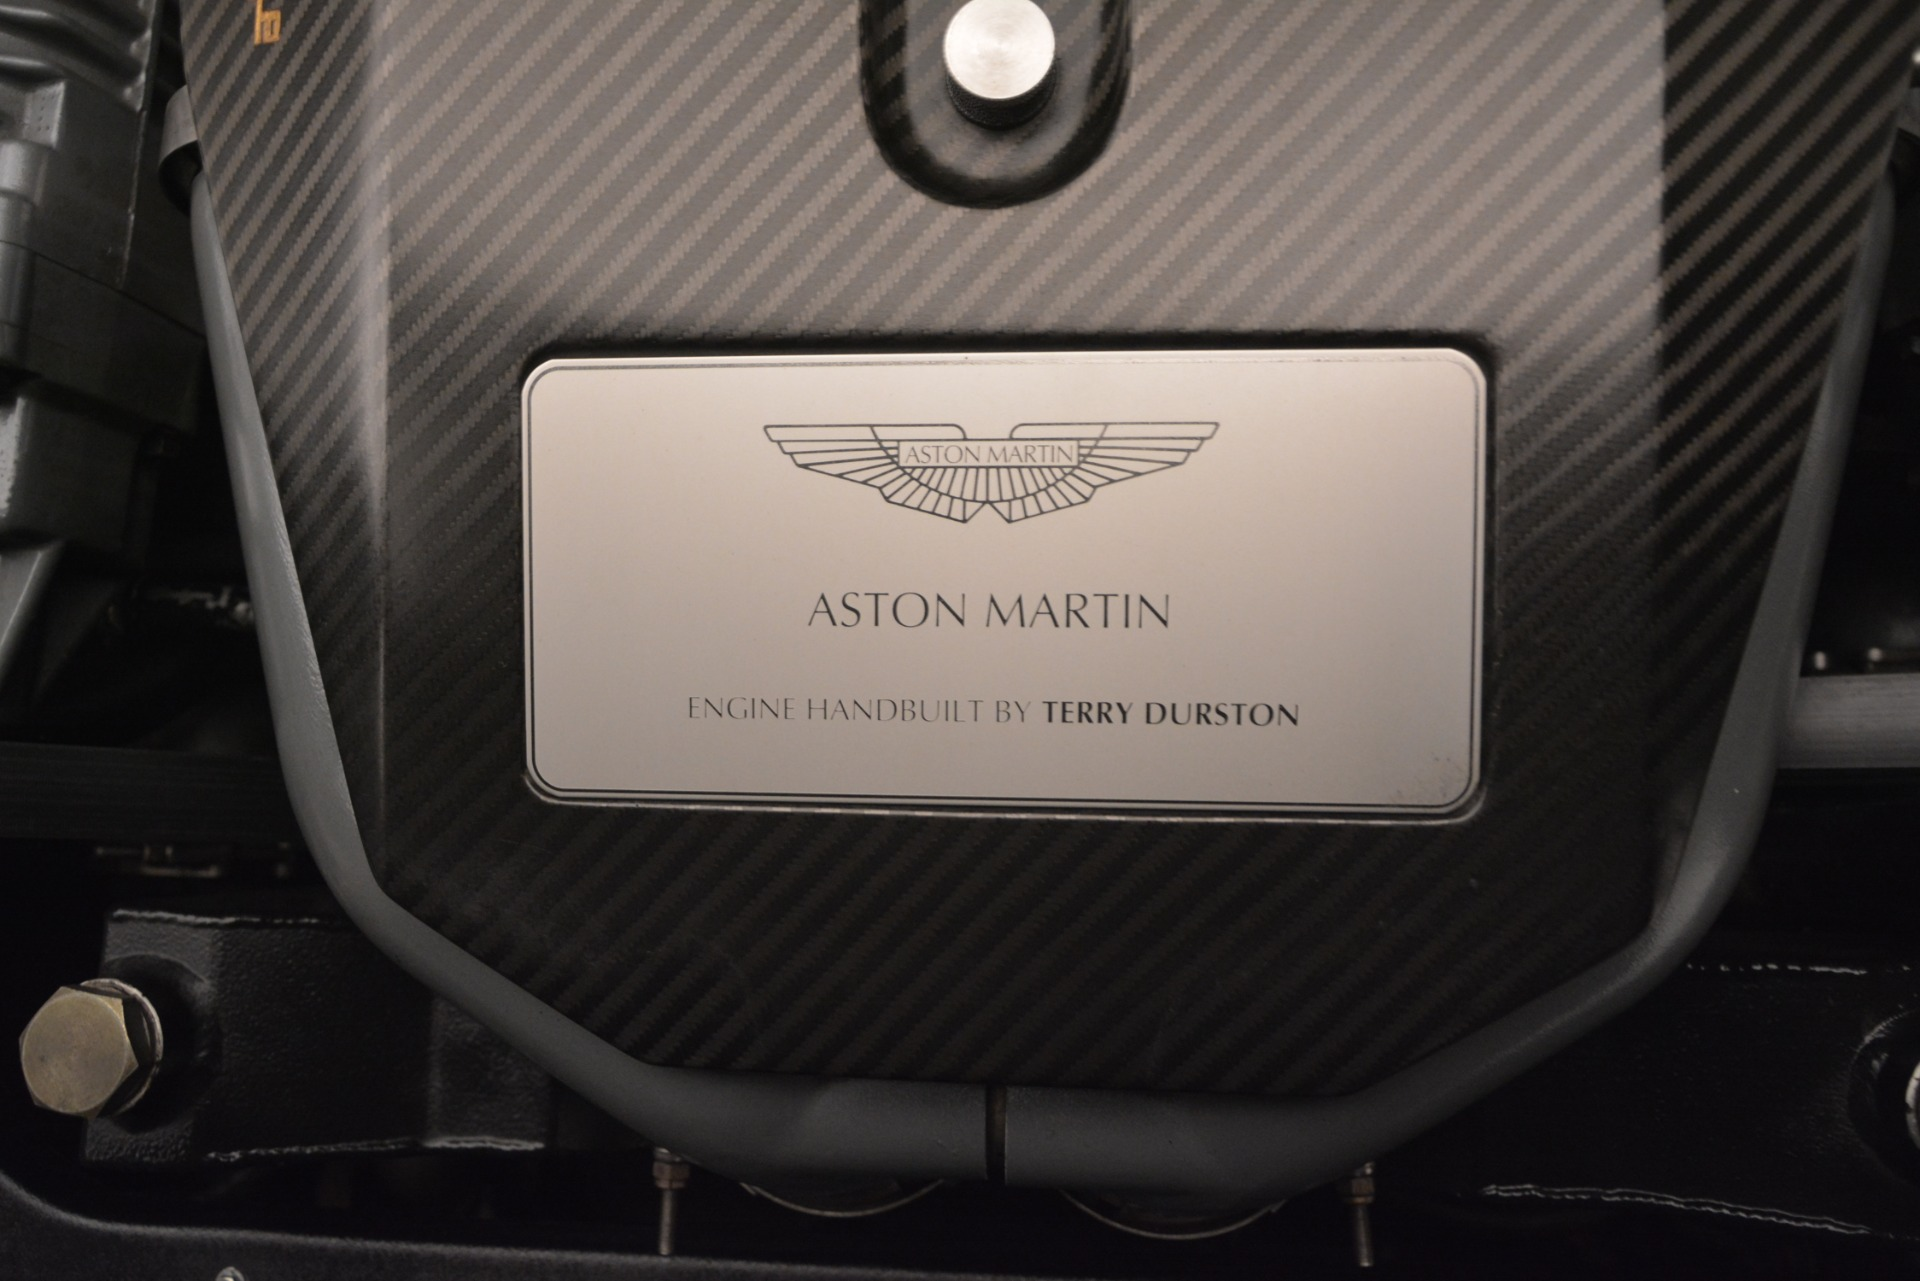 Used 1999 Aston Martin V8 Vantage Le Mans V600 Coupe For Sale In Greenwich, CT 2789_p31